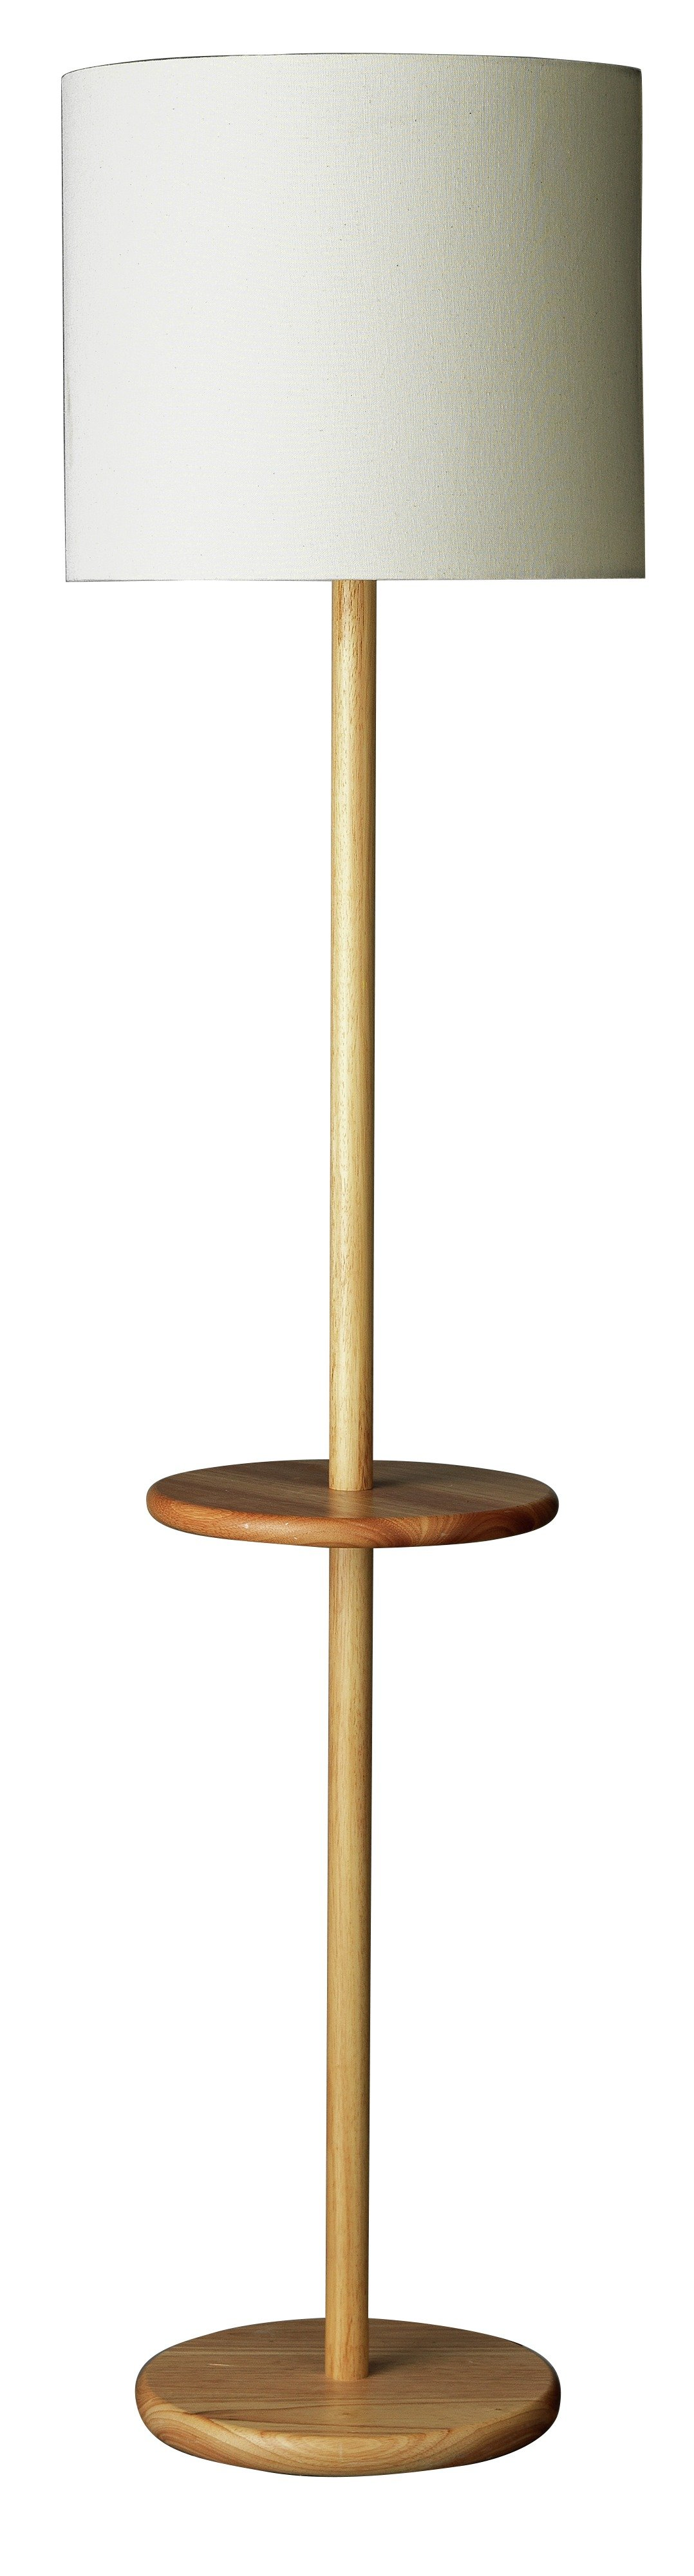 Argos Home Inhabit Wooden Floor Lamp with Table